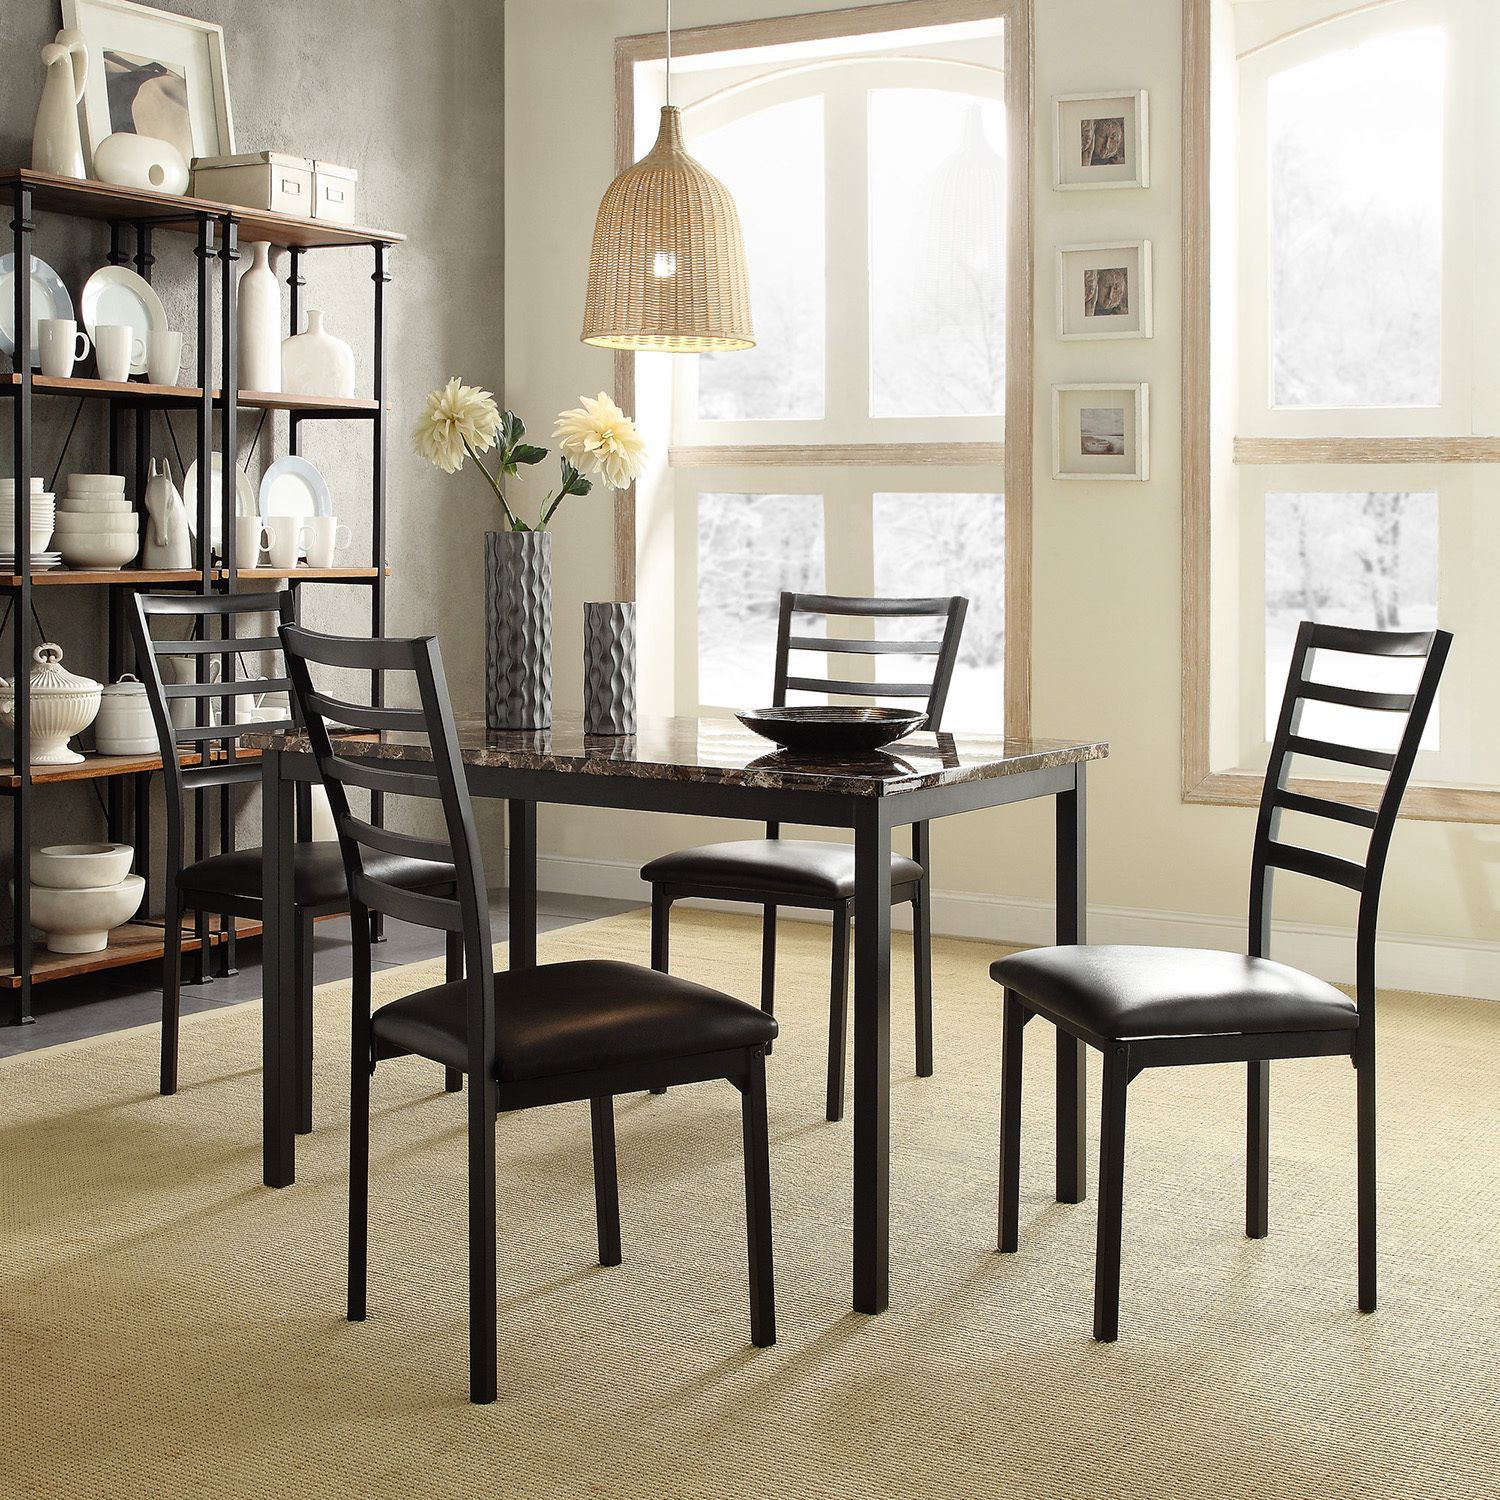 Add simplistic elegance to your dining room decor with this casual dining  set. The sleek